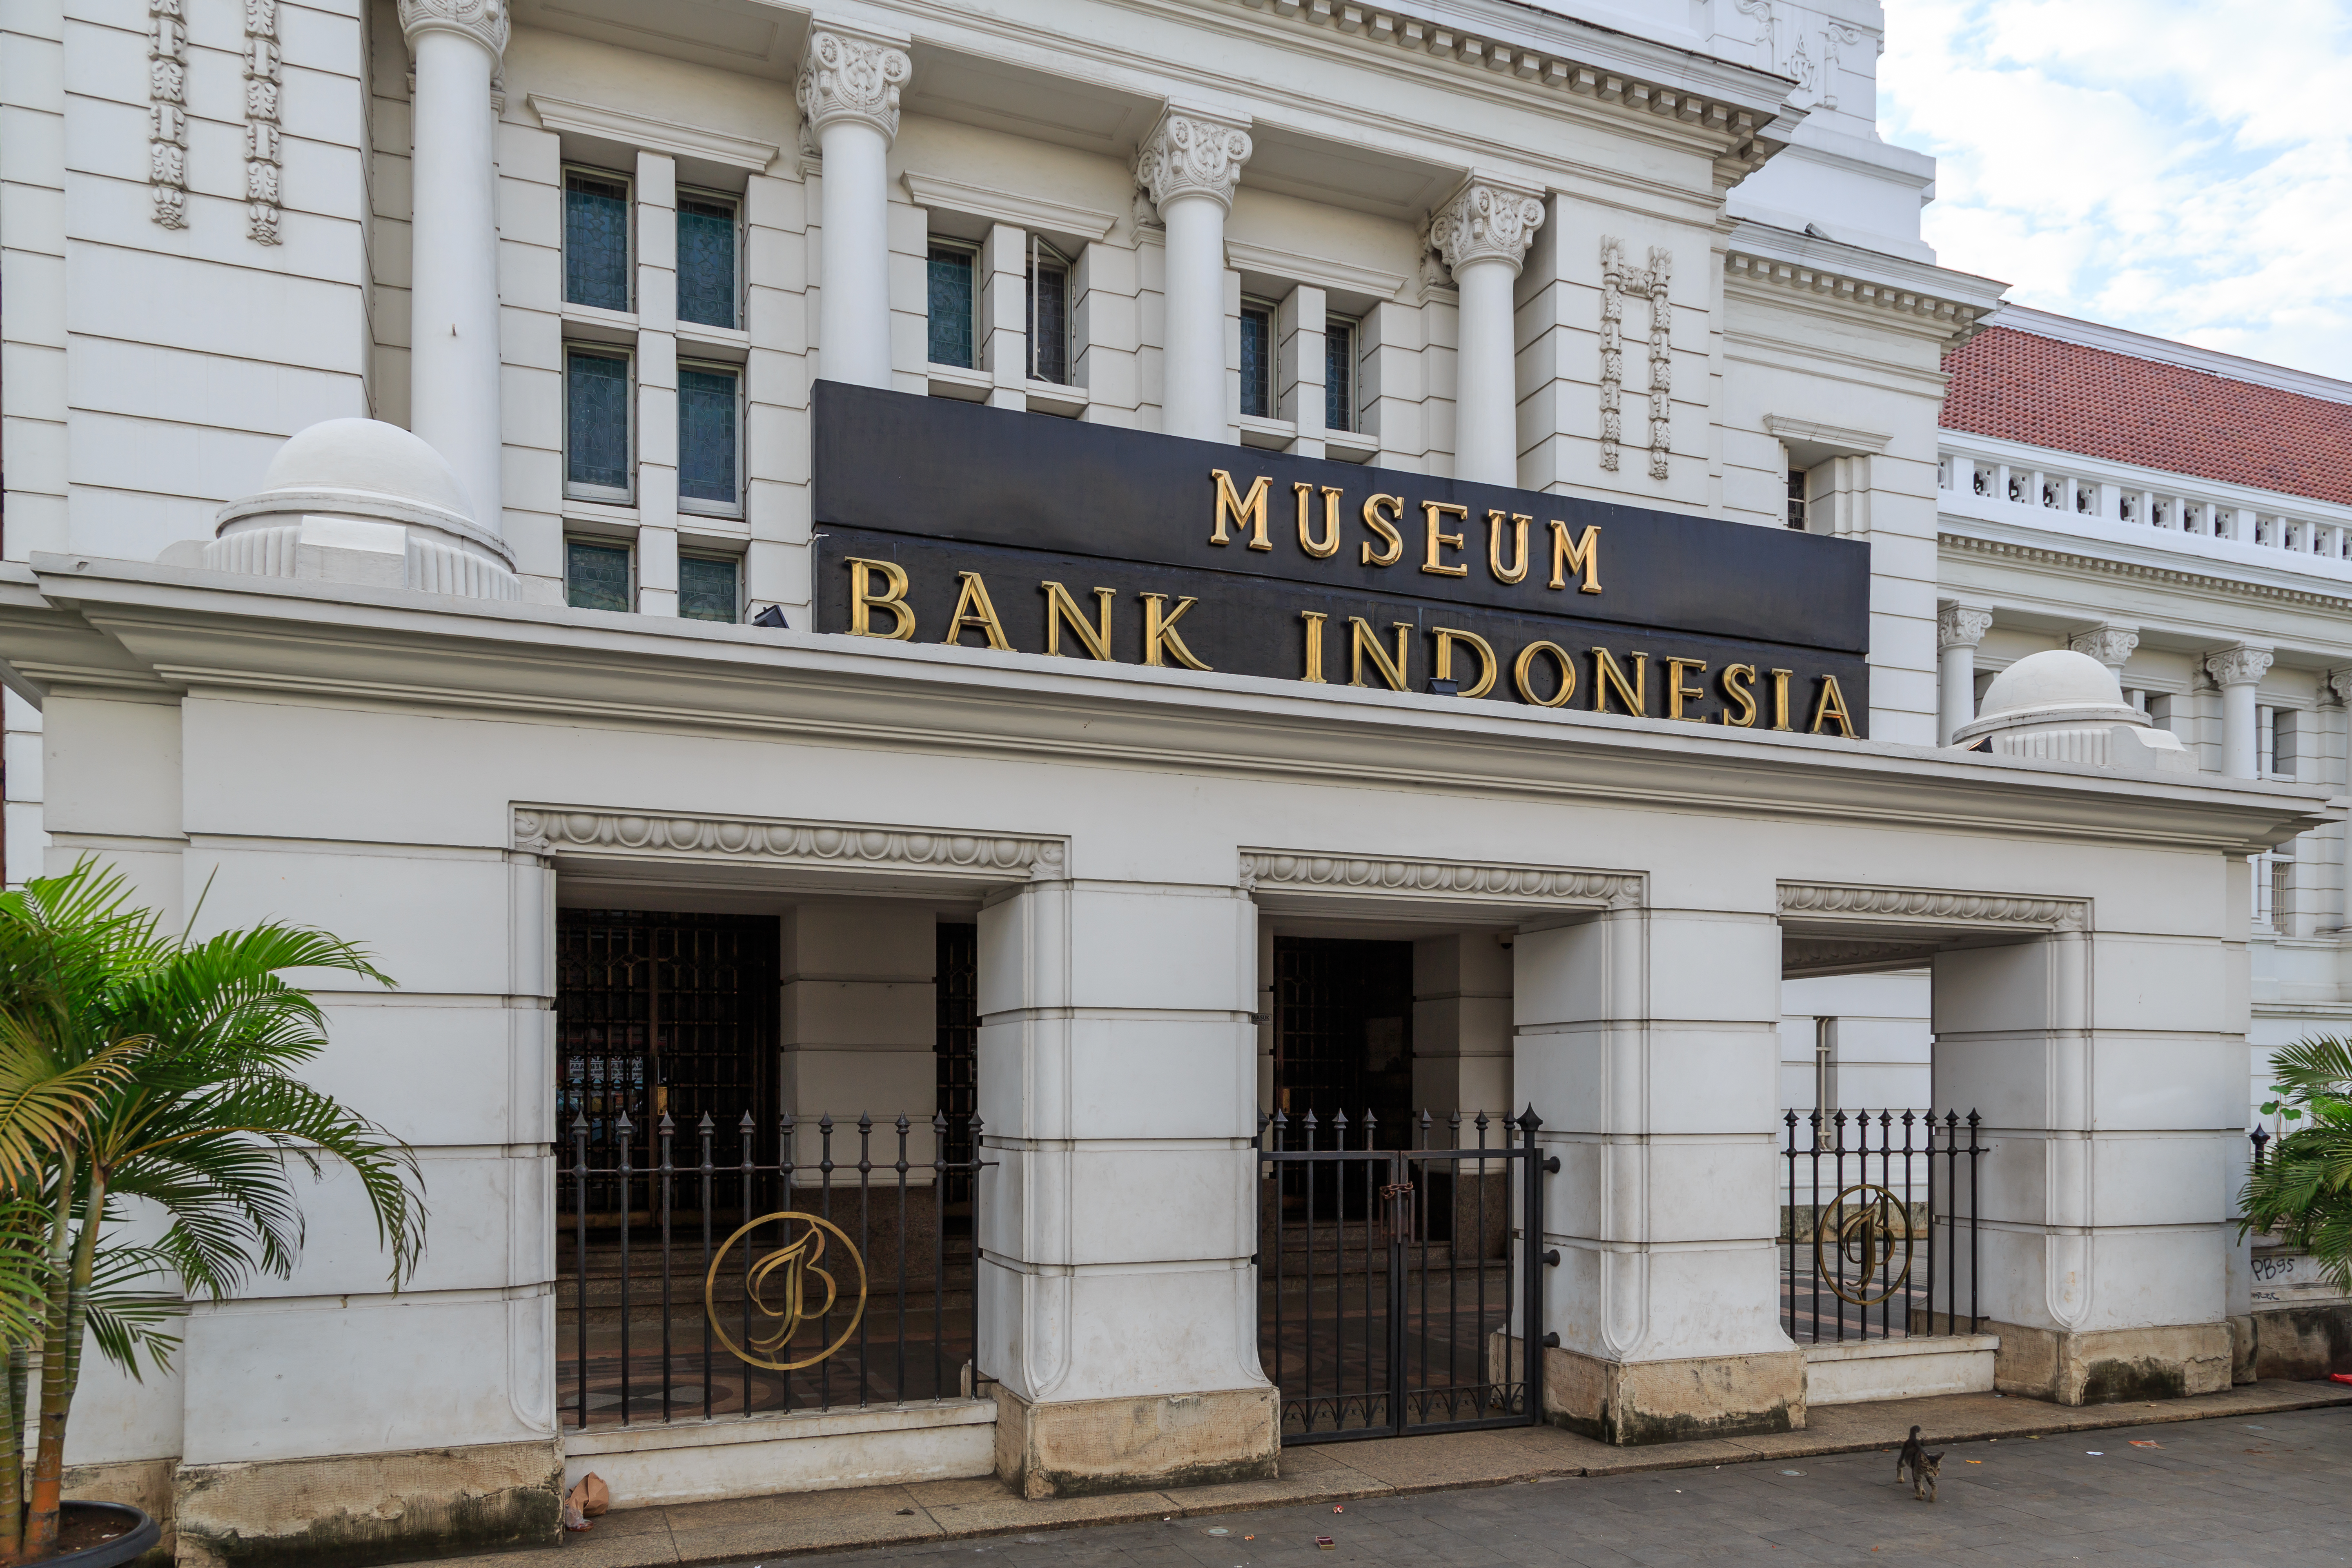 Things You Need to Know about Museum Bank Indonesia